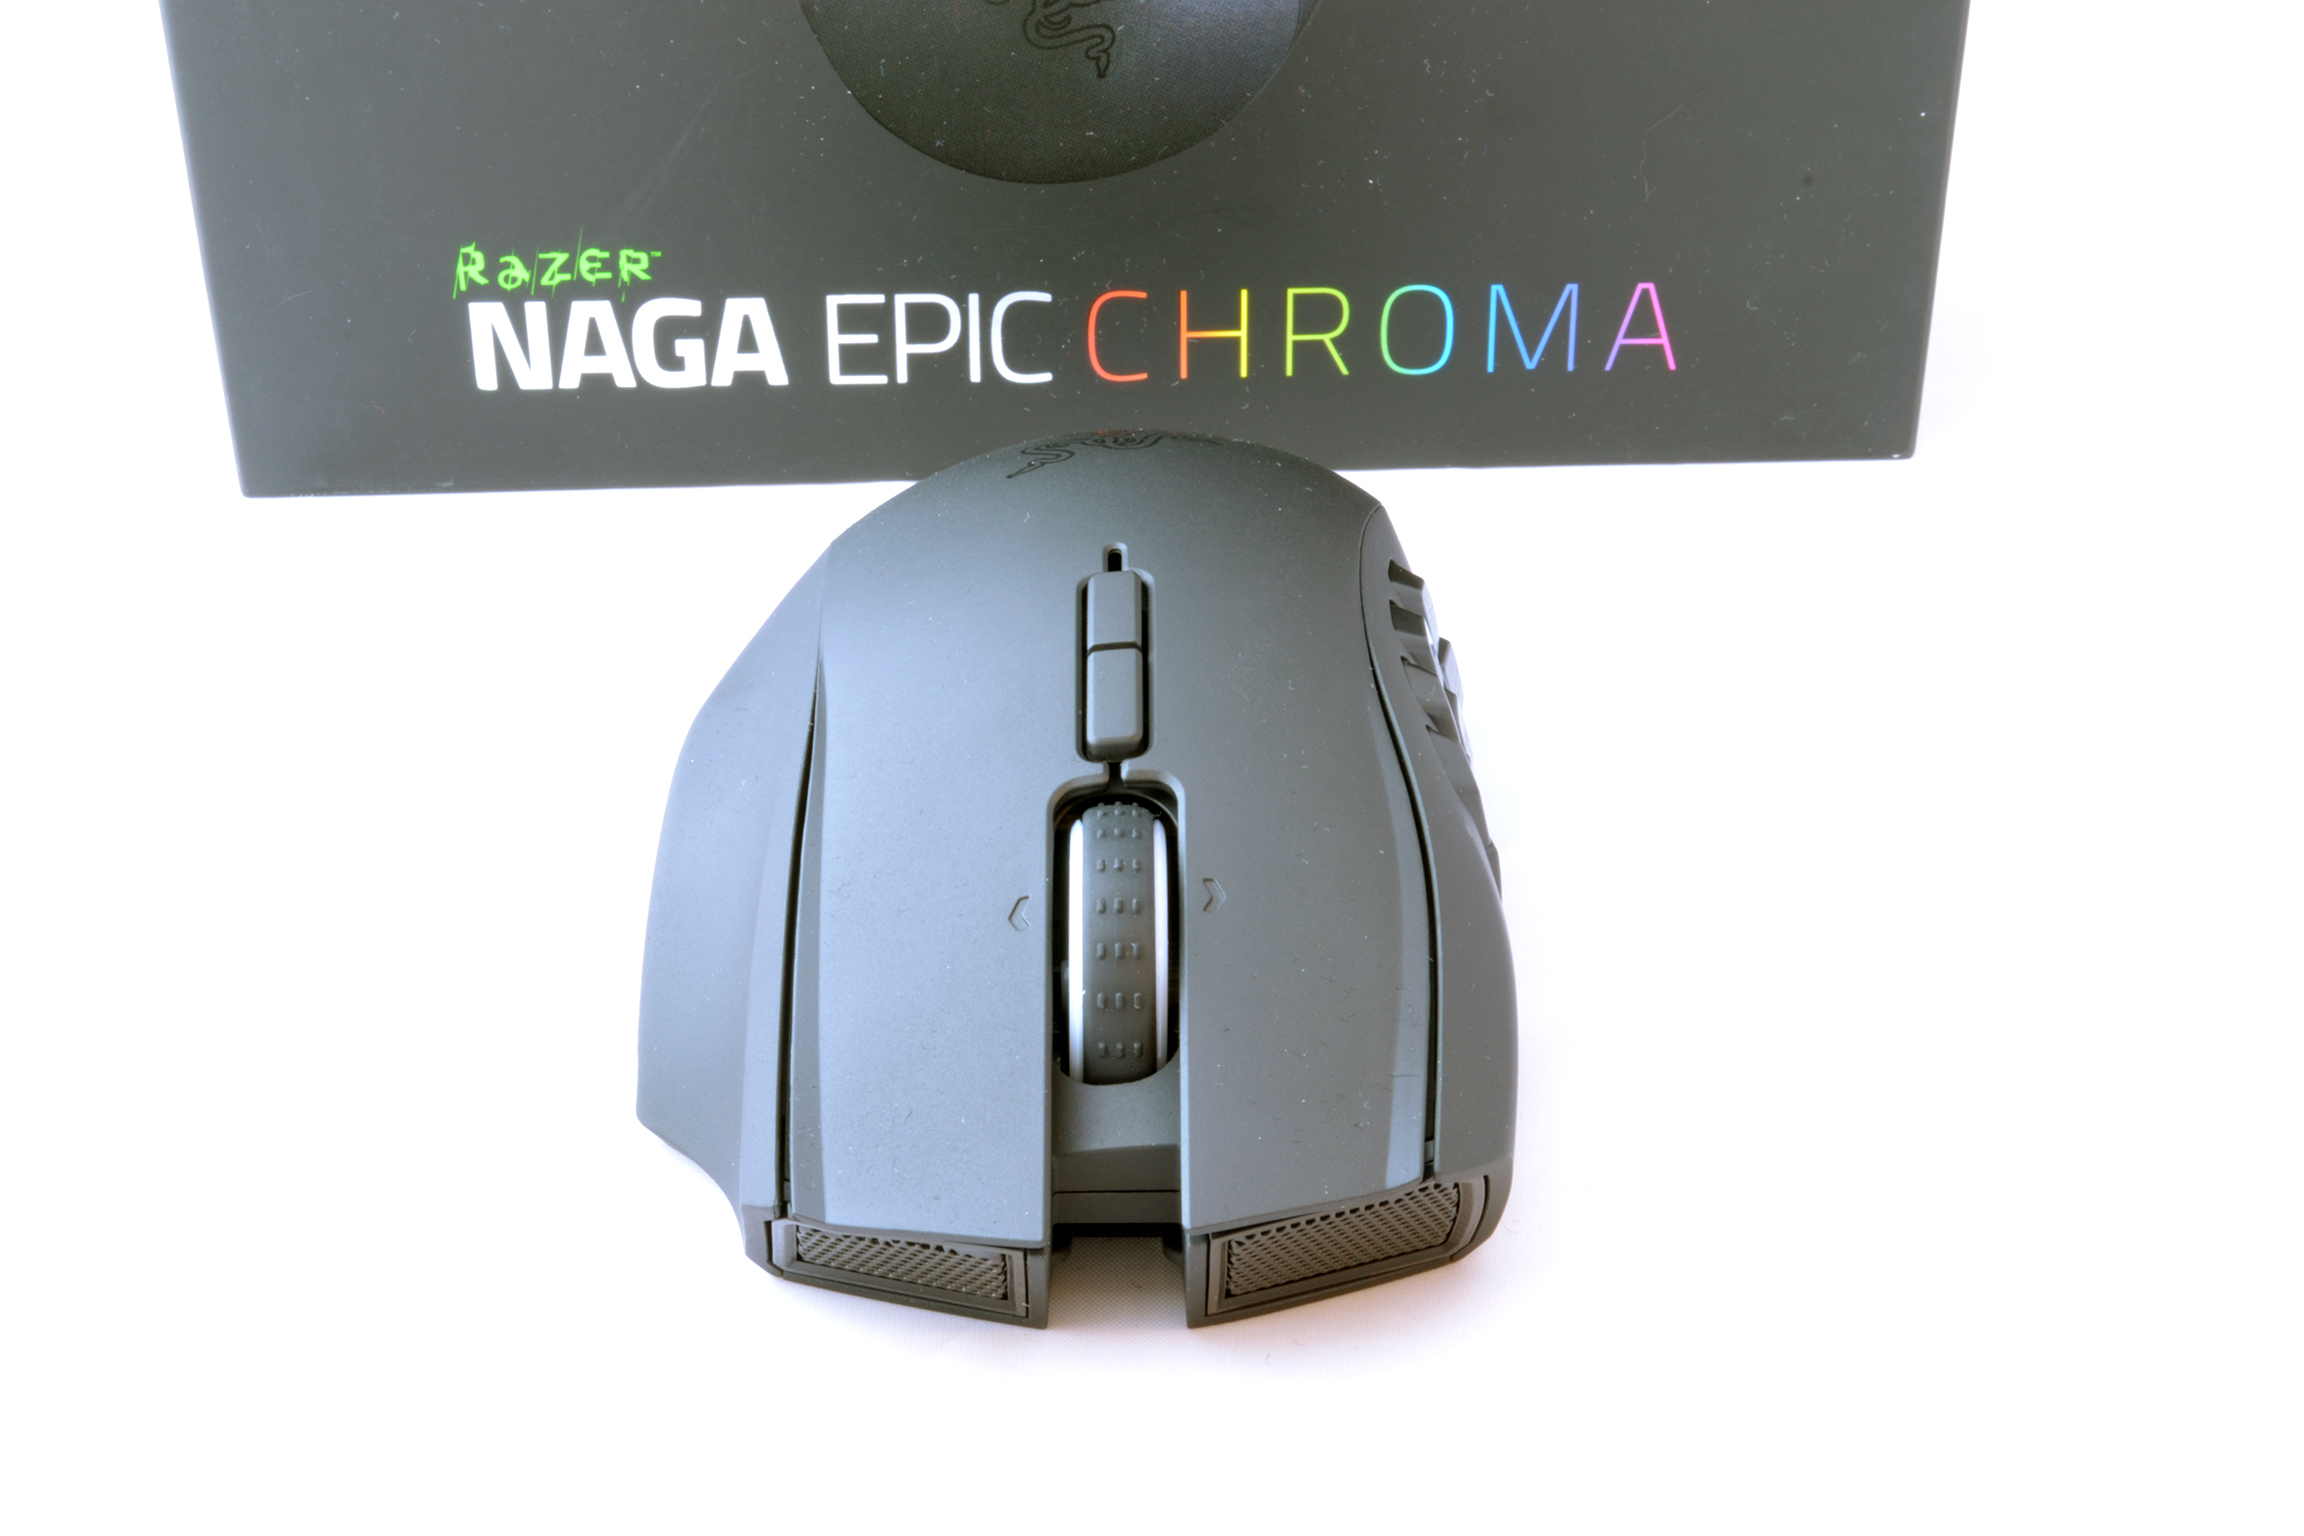 razer_naga_epic_chroma_6